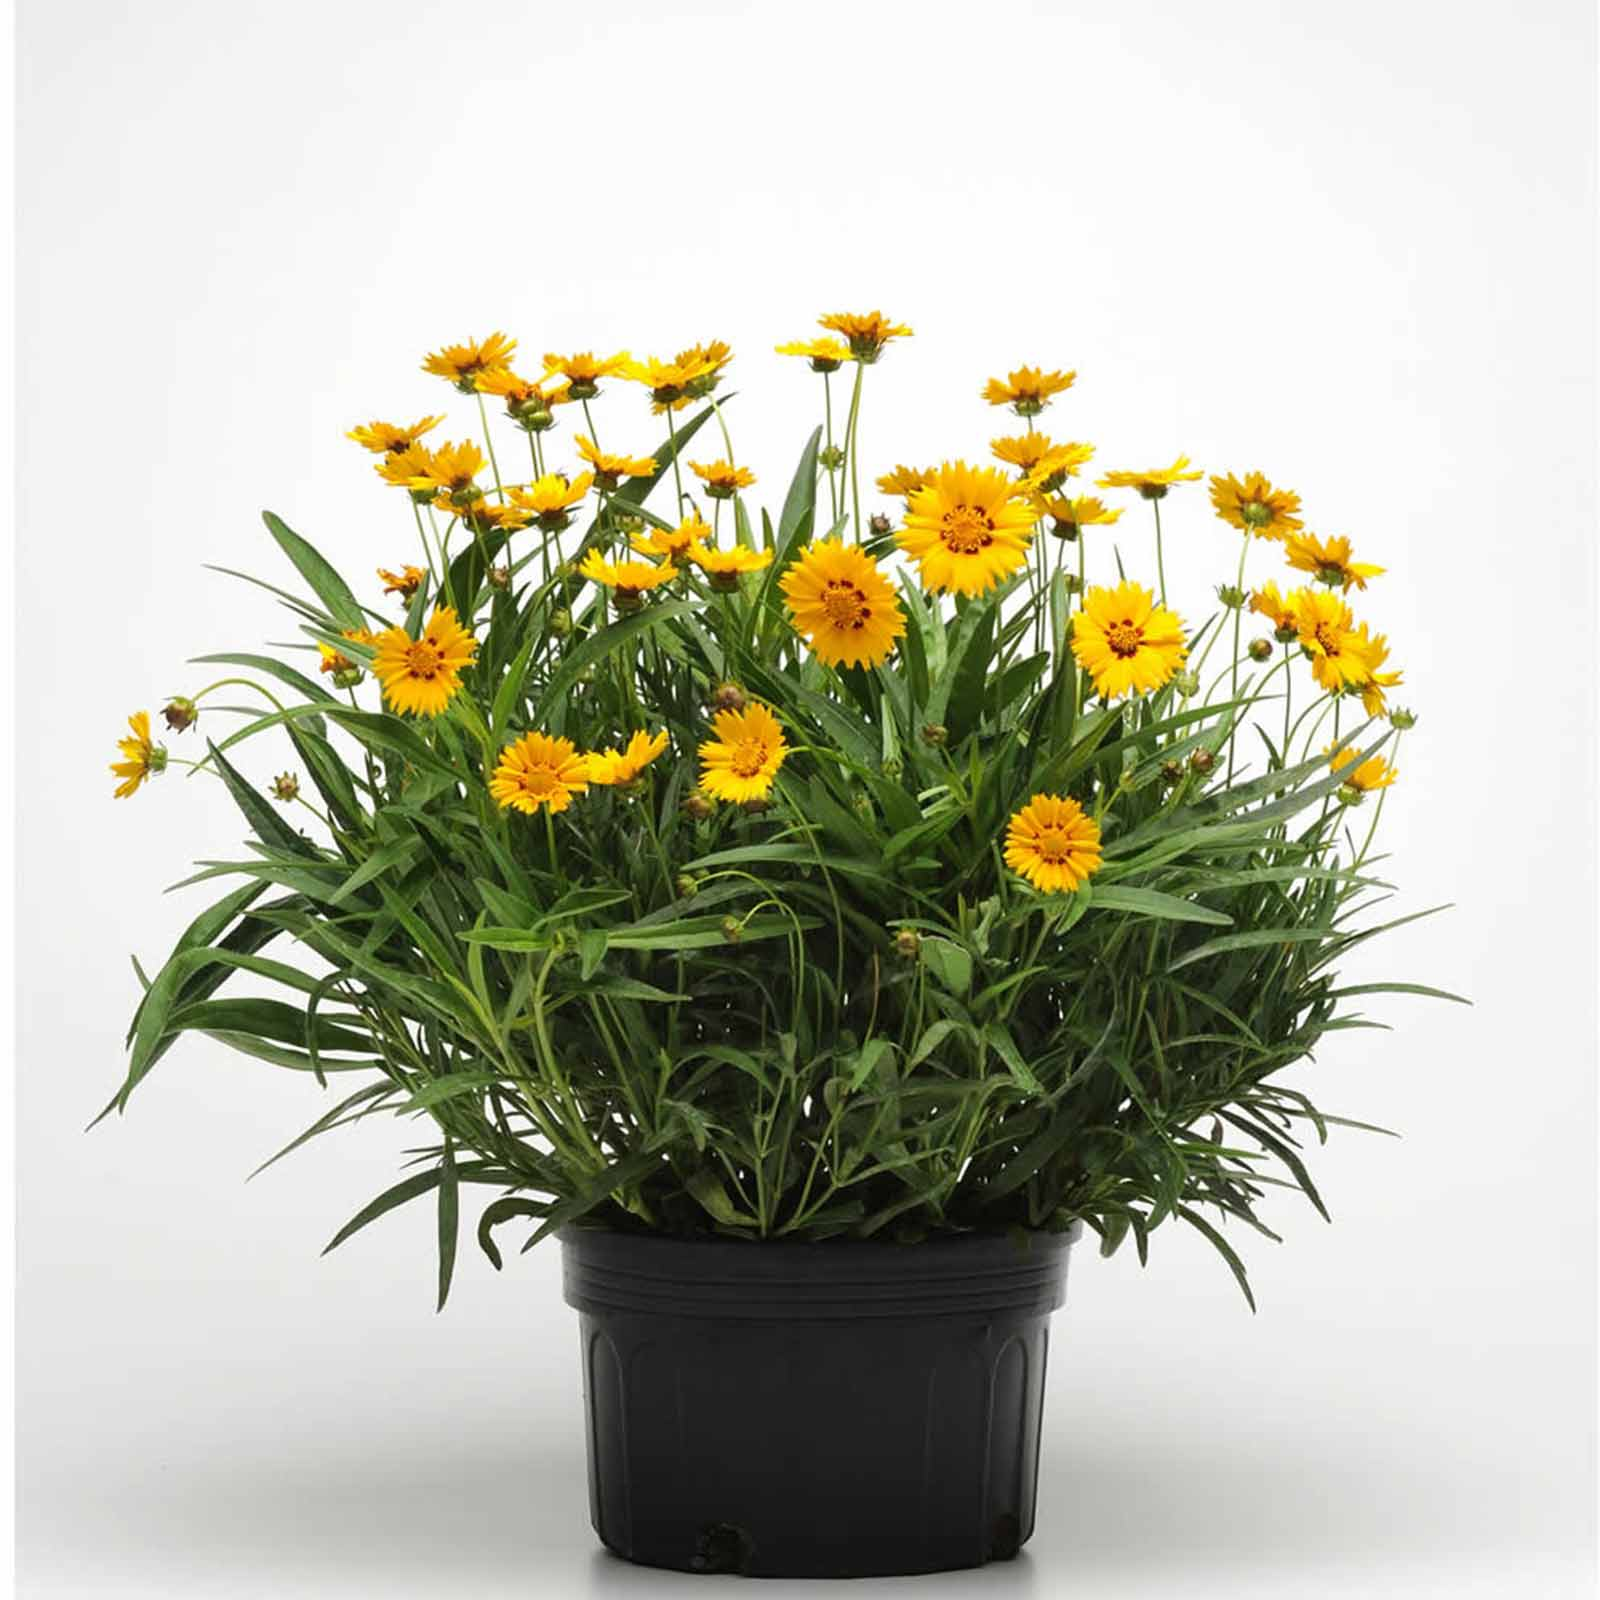 Sunfire coreopsis flower seeds 1000 seeds perennial flower fleuroselect quality mark winner 2006 shows off large single yellow blooms with burgundy red centers flowers first year from febmarch sowing izmirmasajfo